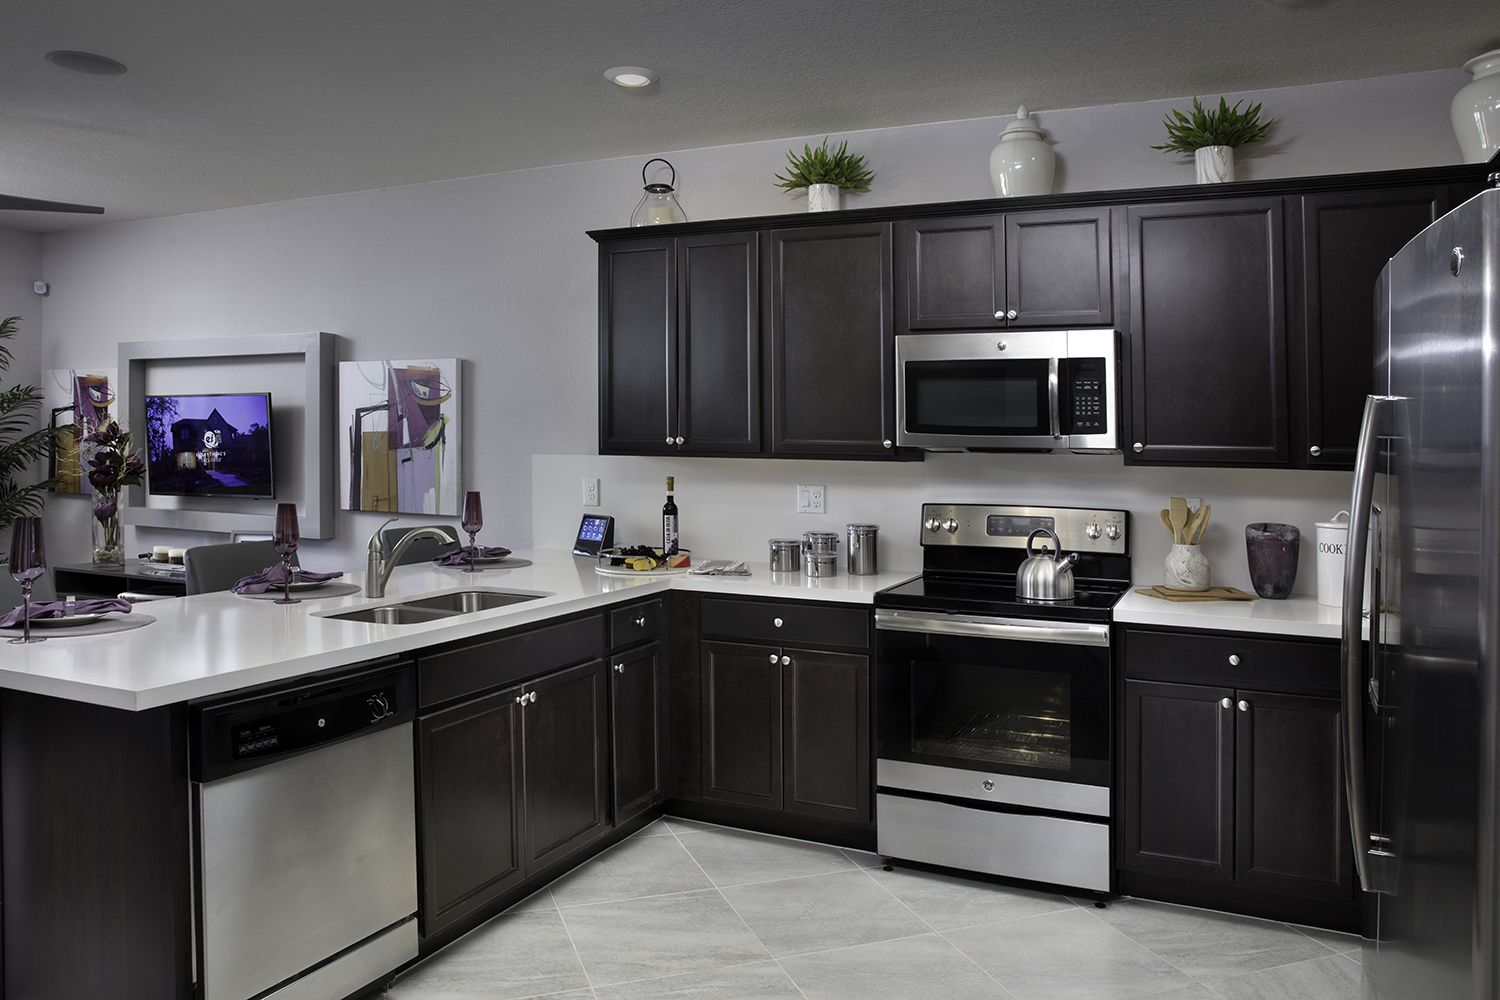 Would Dark Kitchen Cabinets Be A Delight Instead Of Ones That Are White Aquabella In Hialeah F Dark Kitchen Cabinets Kitchen Cabinets Kitchen Utensils Store